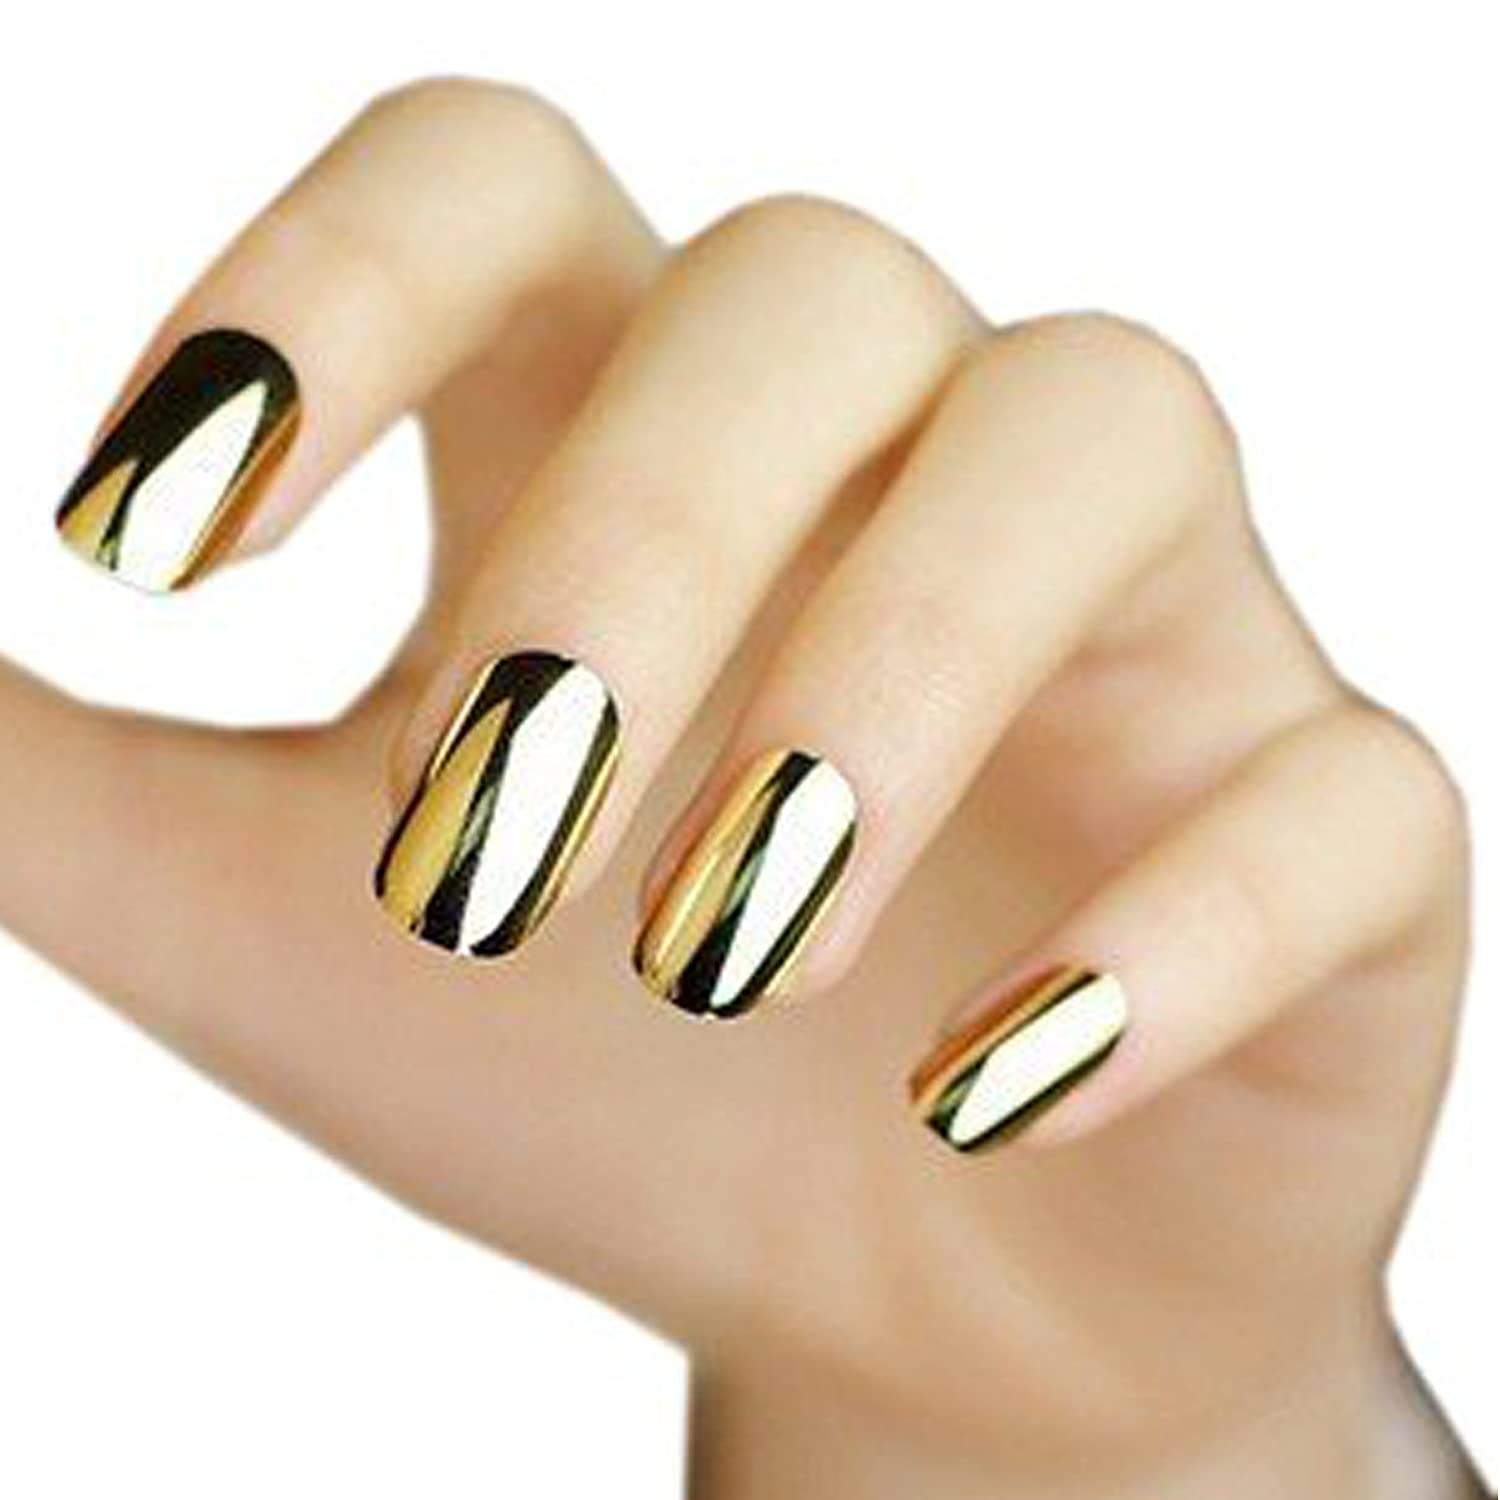 Amazon.com : Good2Deal 2* Fashion Super Star Nail Art Polish Gold ...